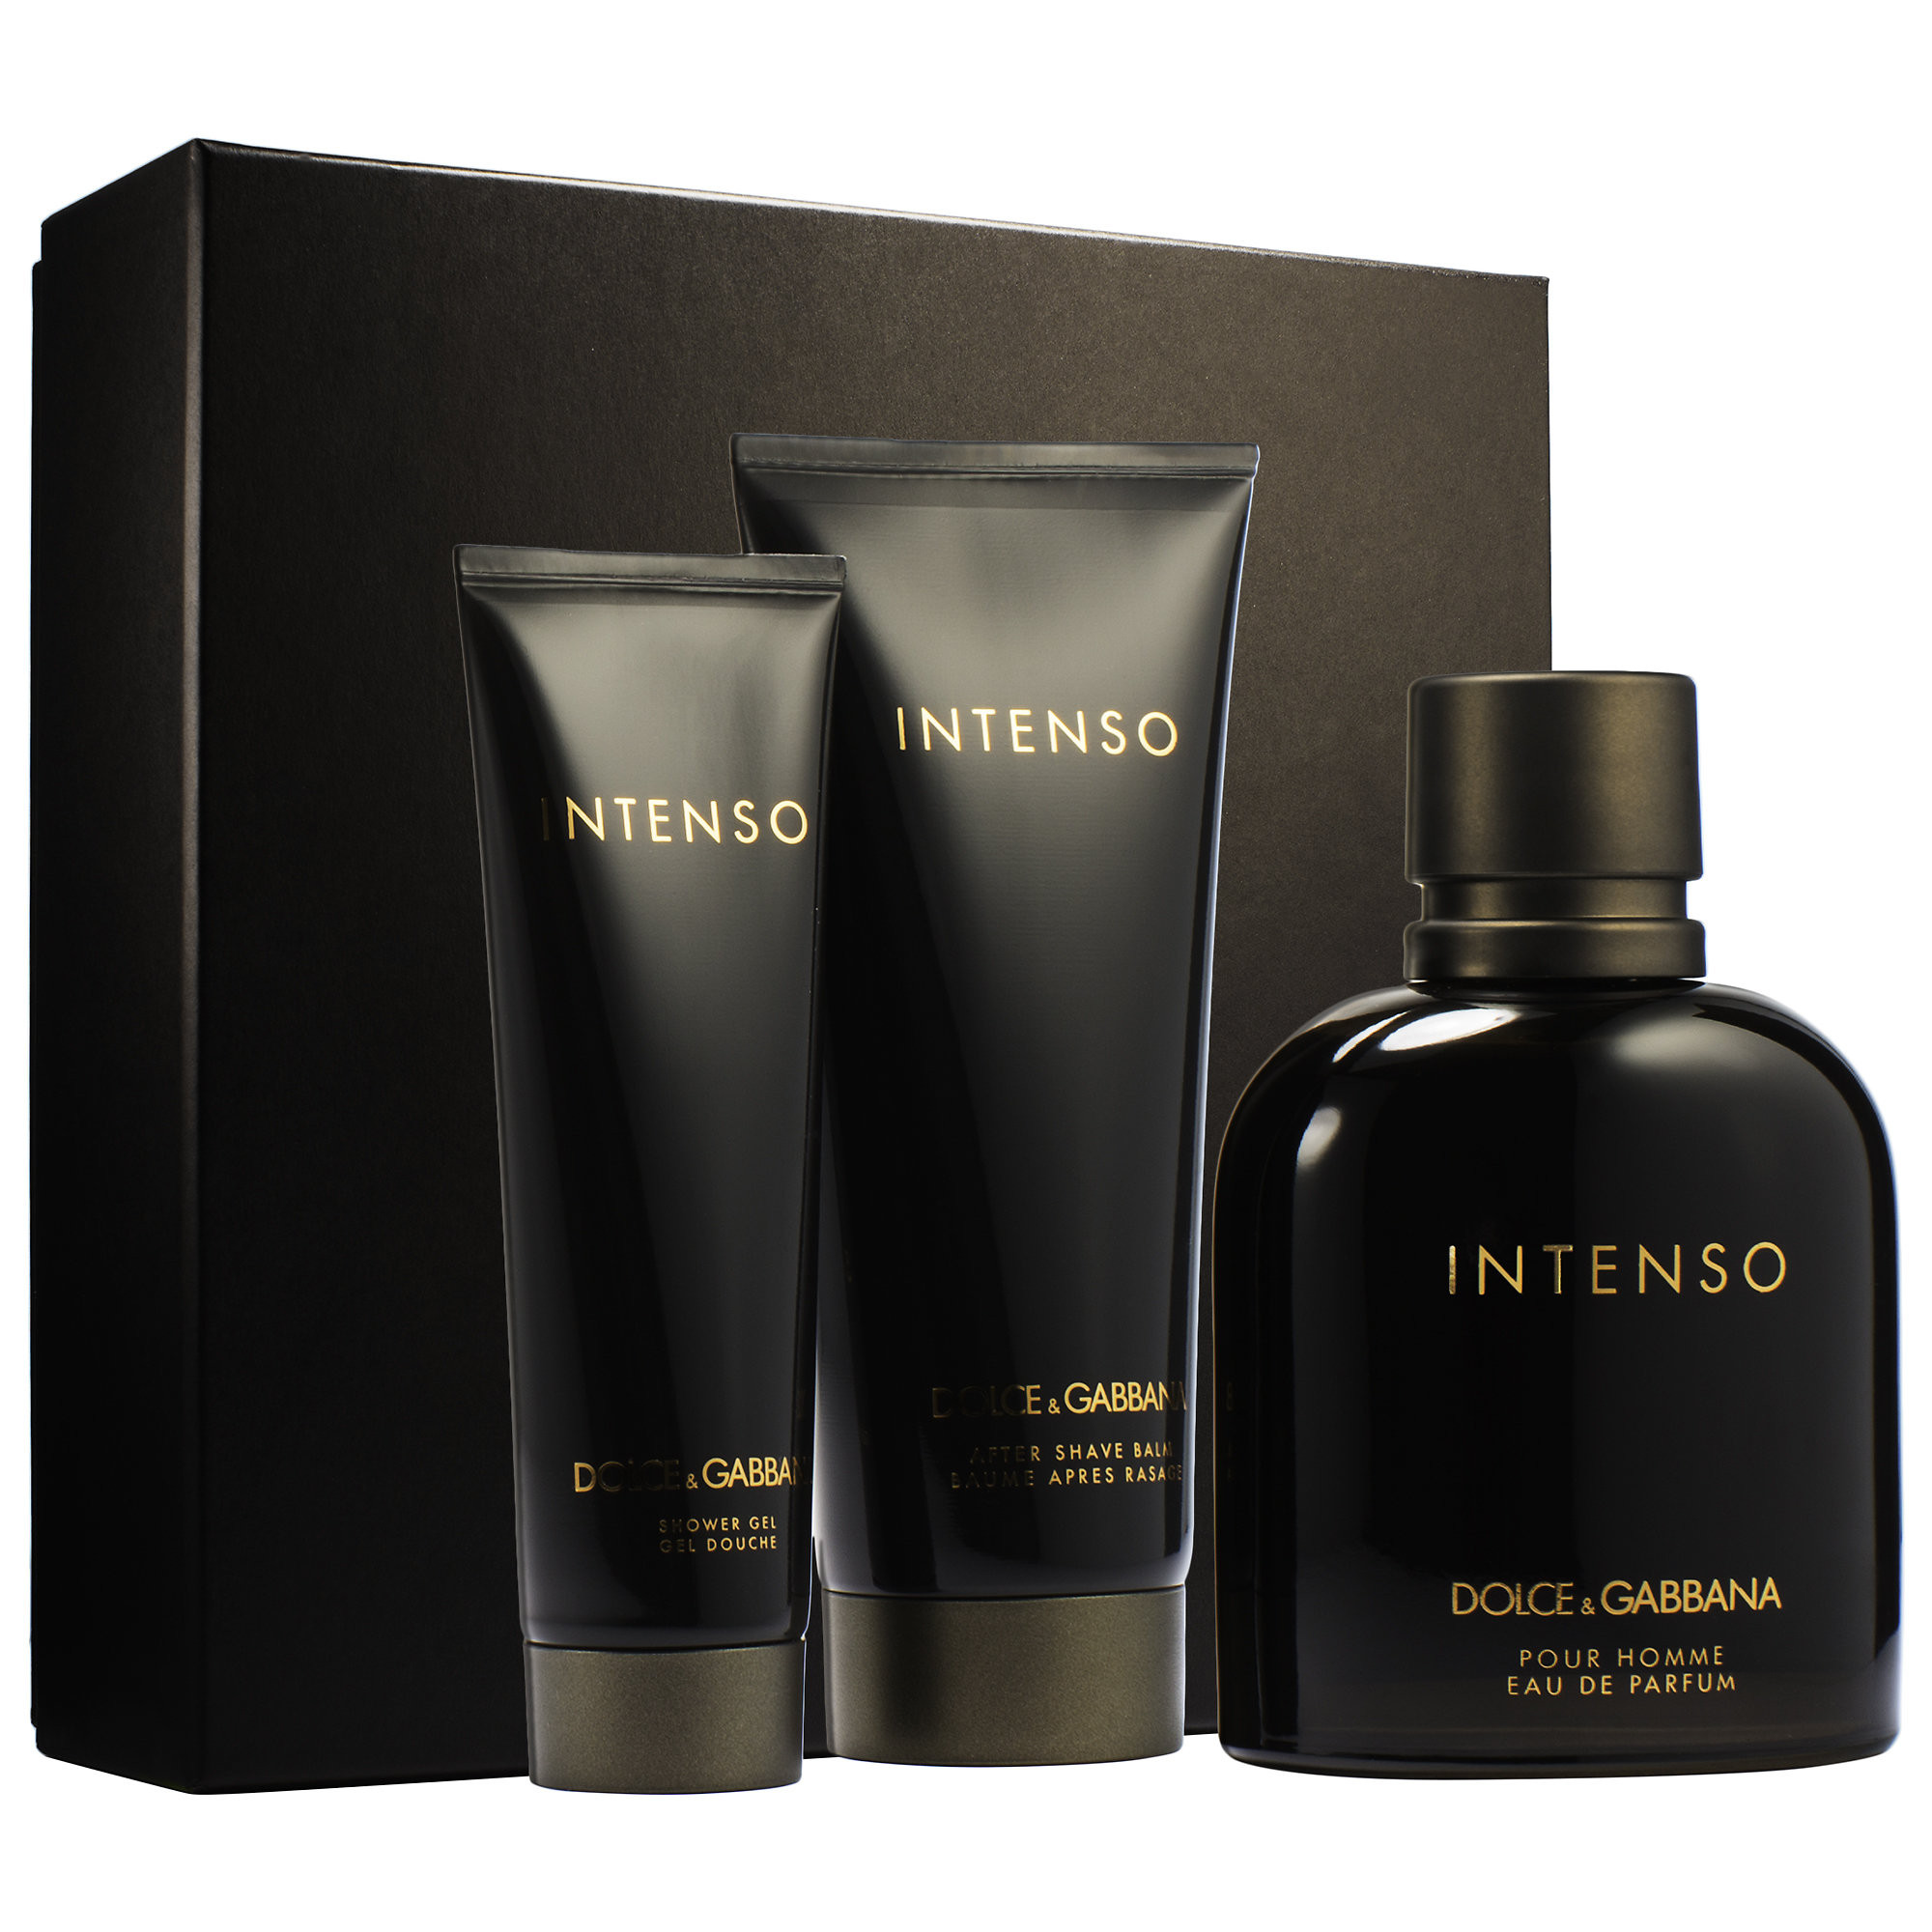 DOLCE GABBANA INTENSO 3PCS GIFT SETS FOR MEN Image